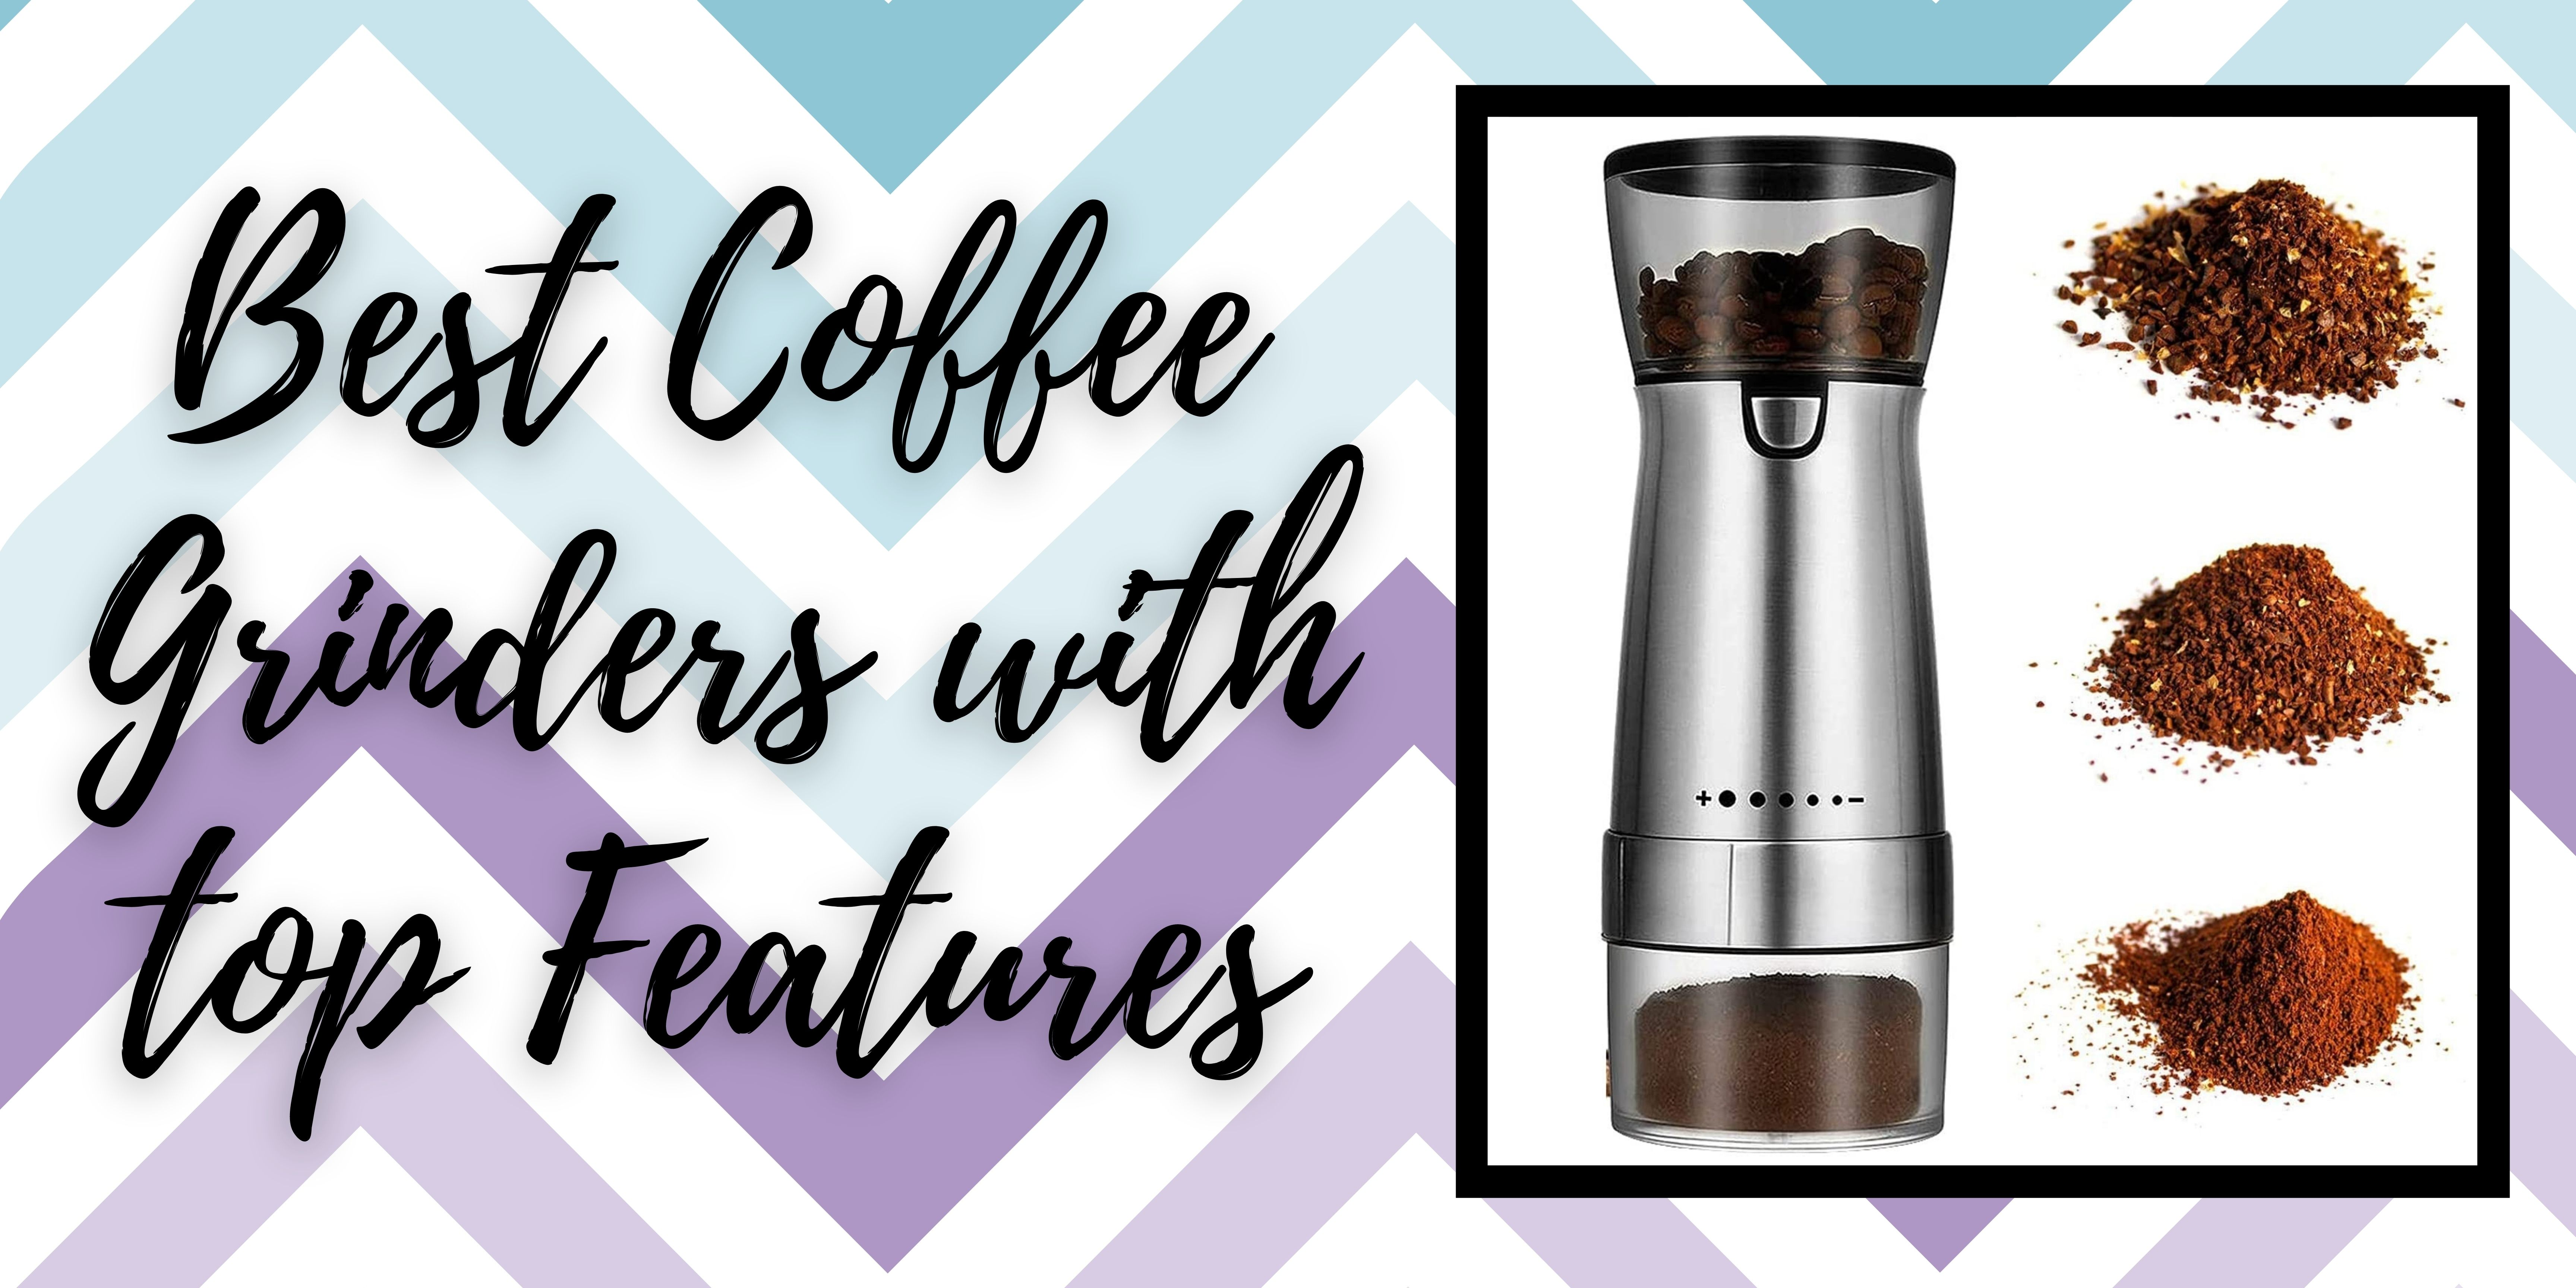 Best Coffee Grinders with top Features